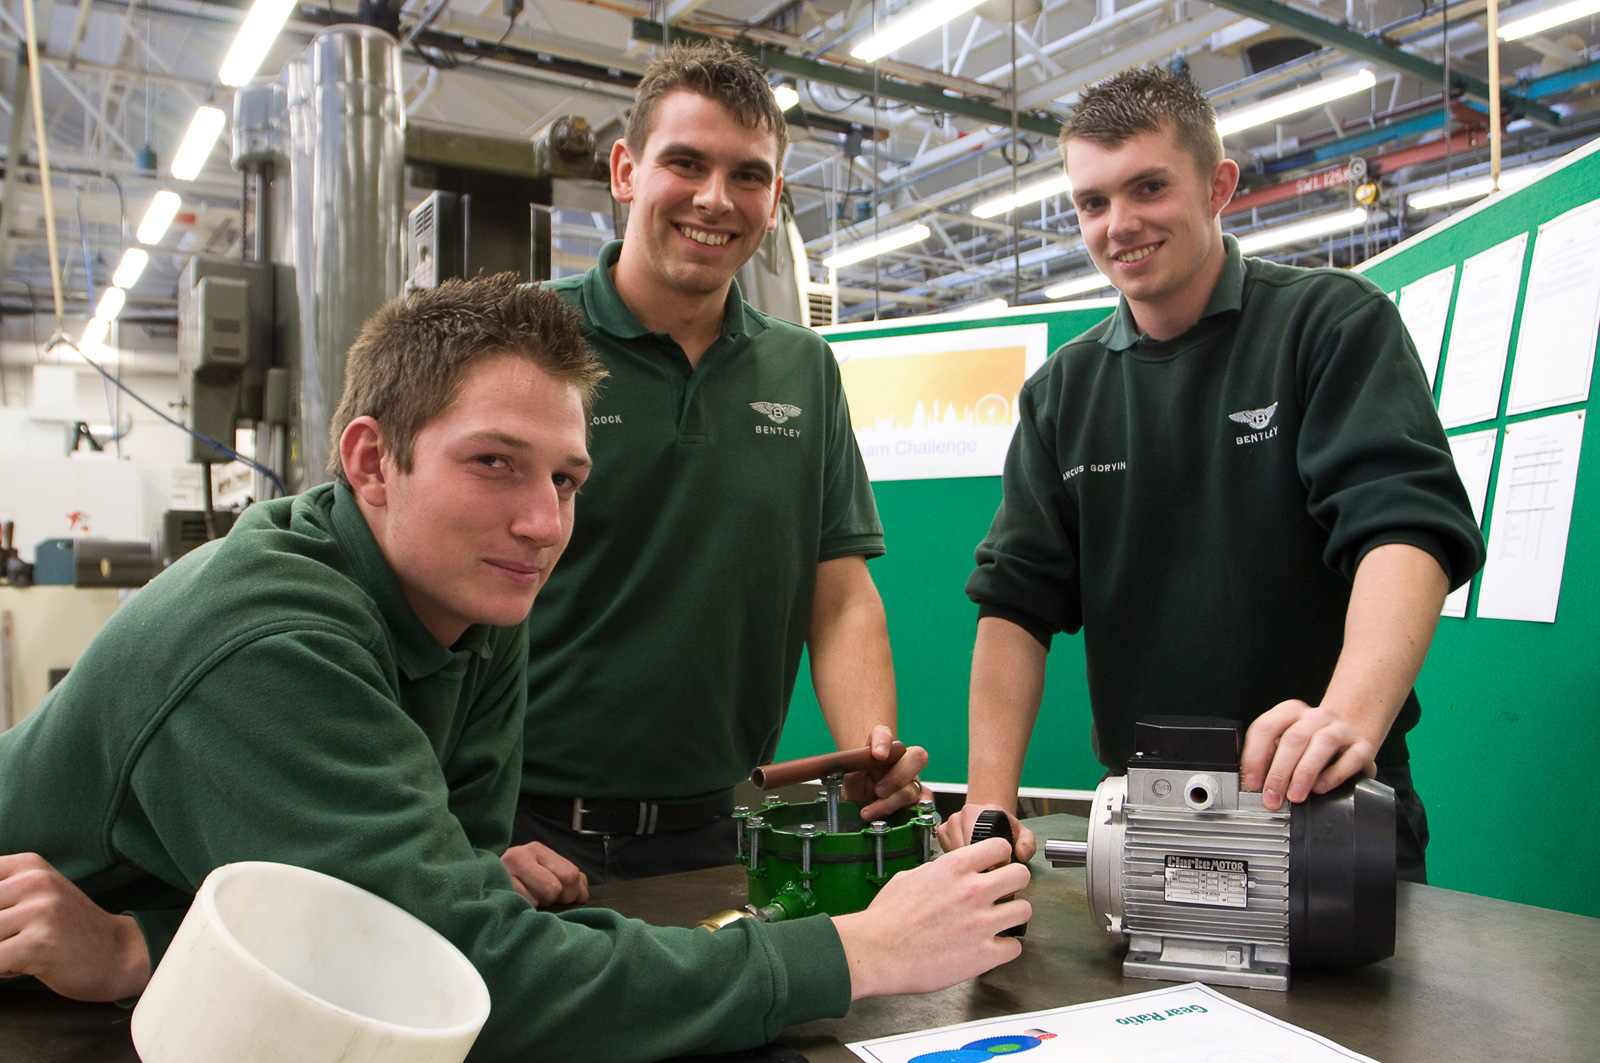 Bentley craft apprentices Reece Jenks , Paul Alcock and Marcus Gorvin in the Bentley tool room training for the manufacturing team challenge at World Skills 2011